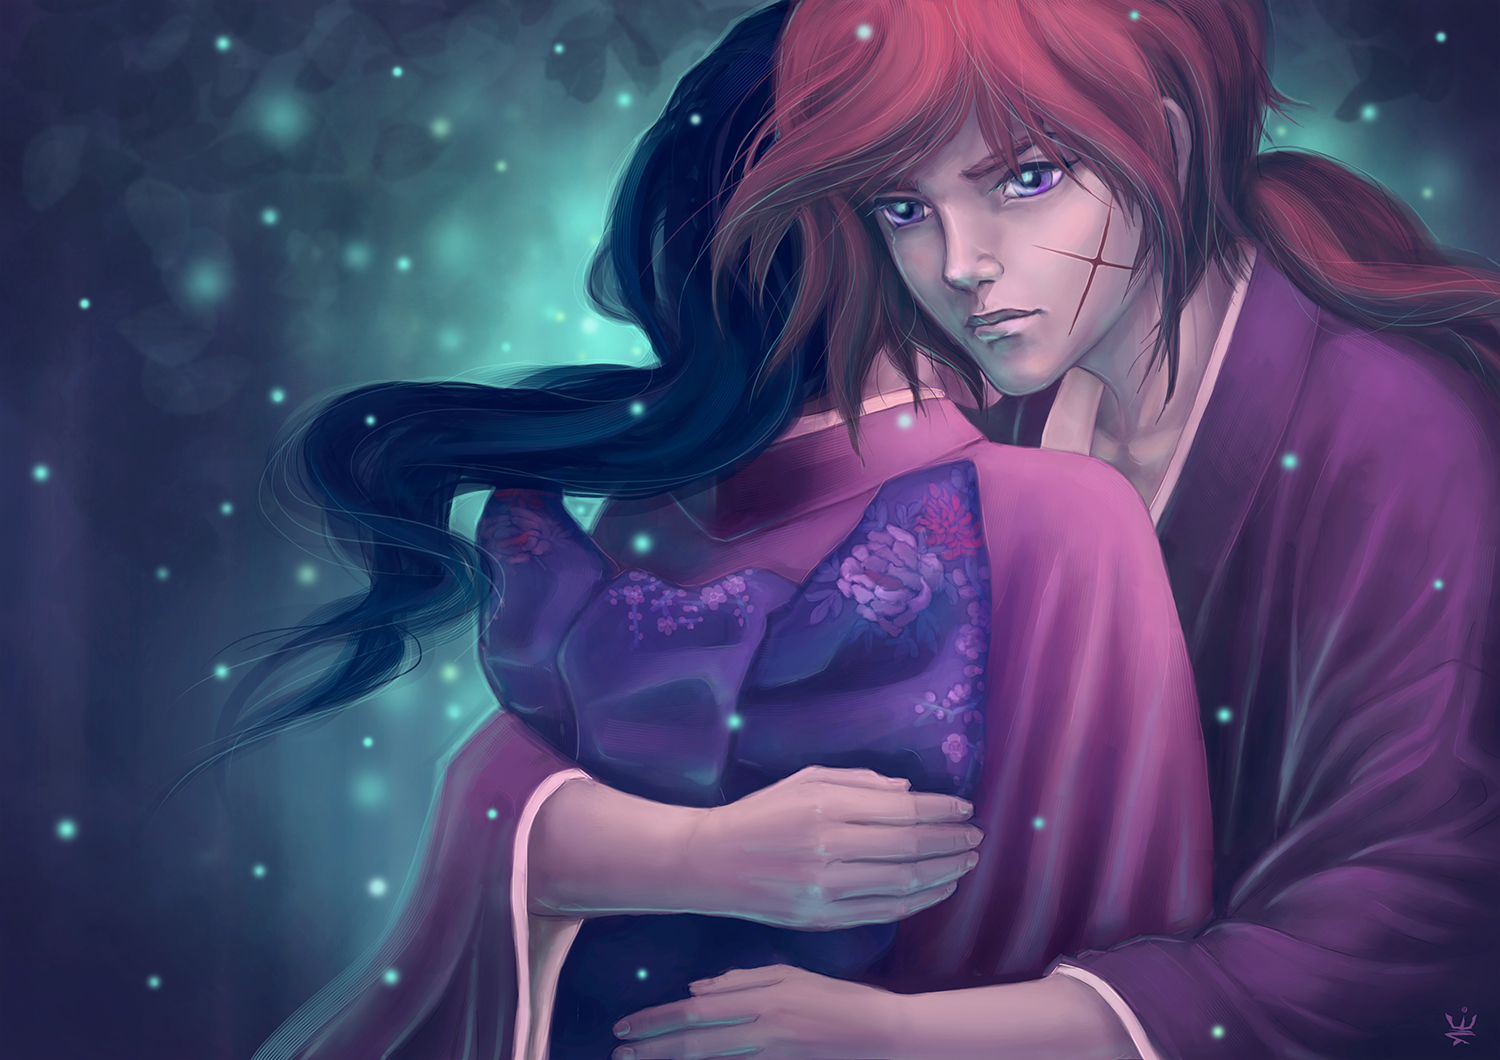 Fireflies (Rurouni Kenshin) by Esther Wagner